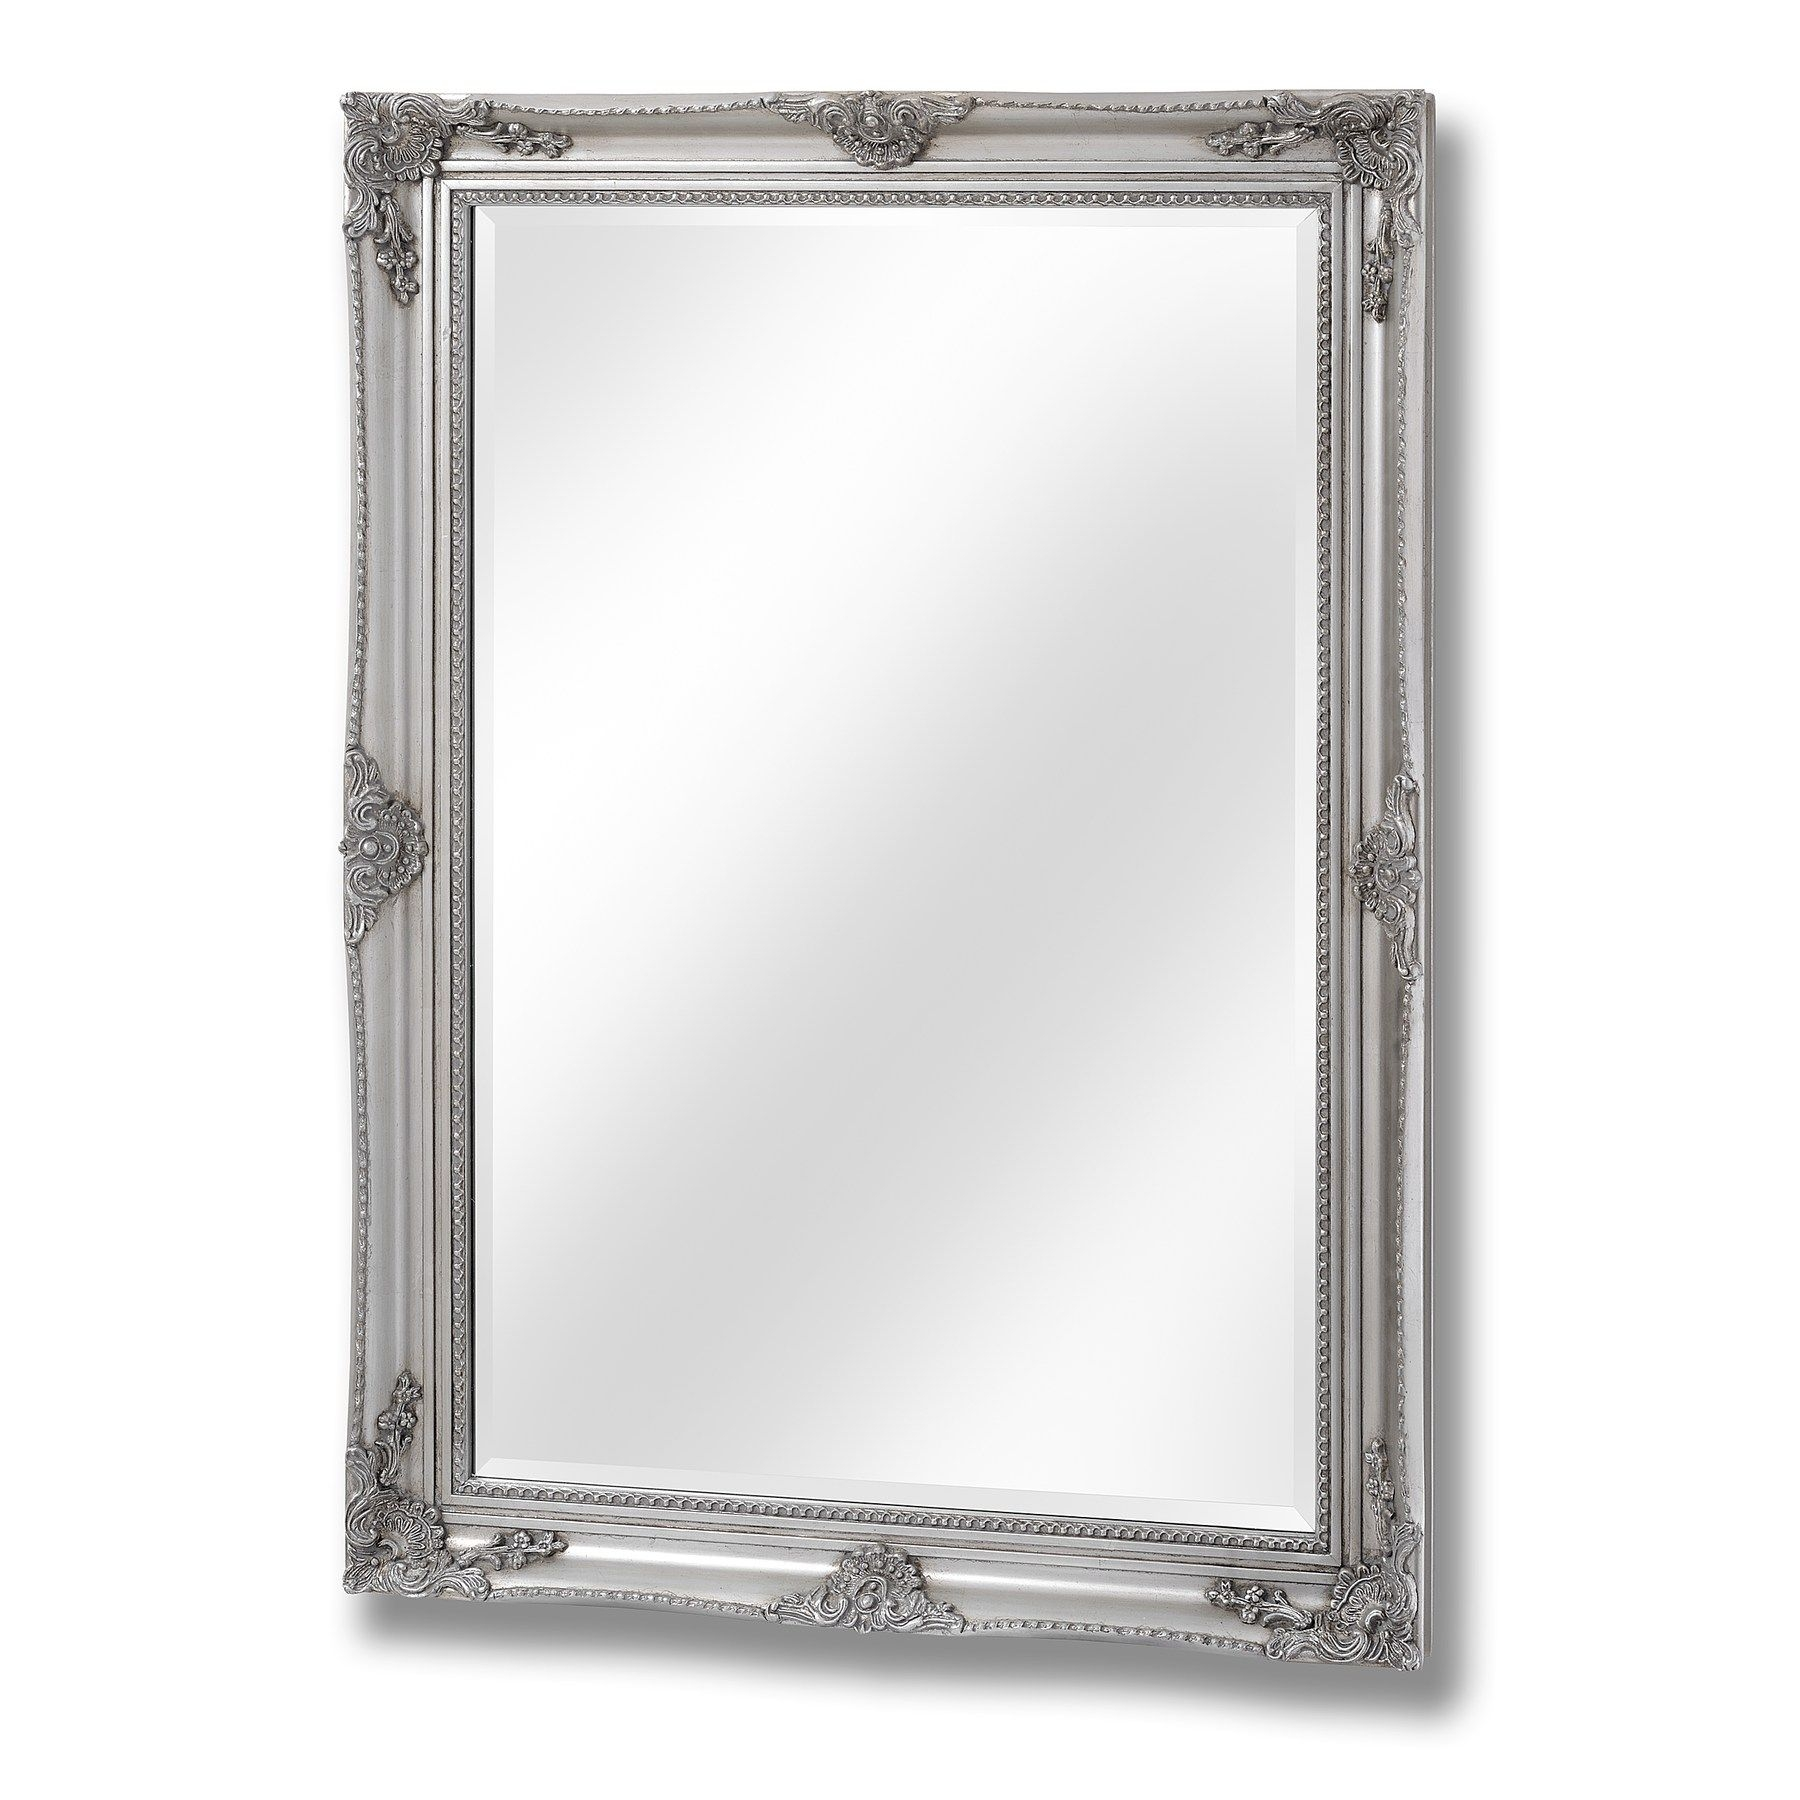 Antique Silver Baroque Style Mirror With Baroque Style Mirror (Image 4 of 15)